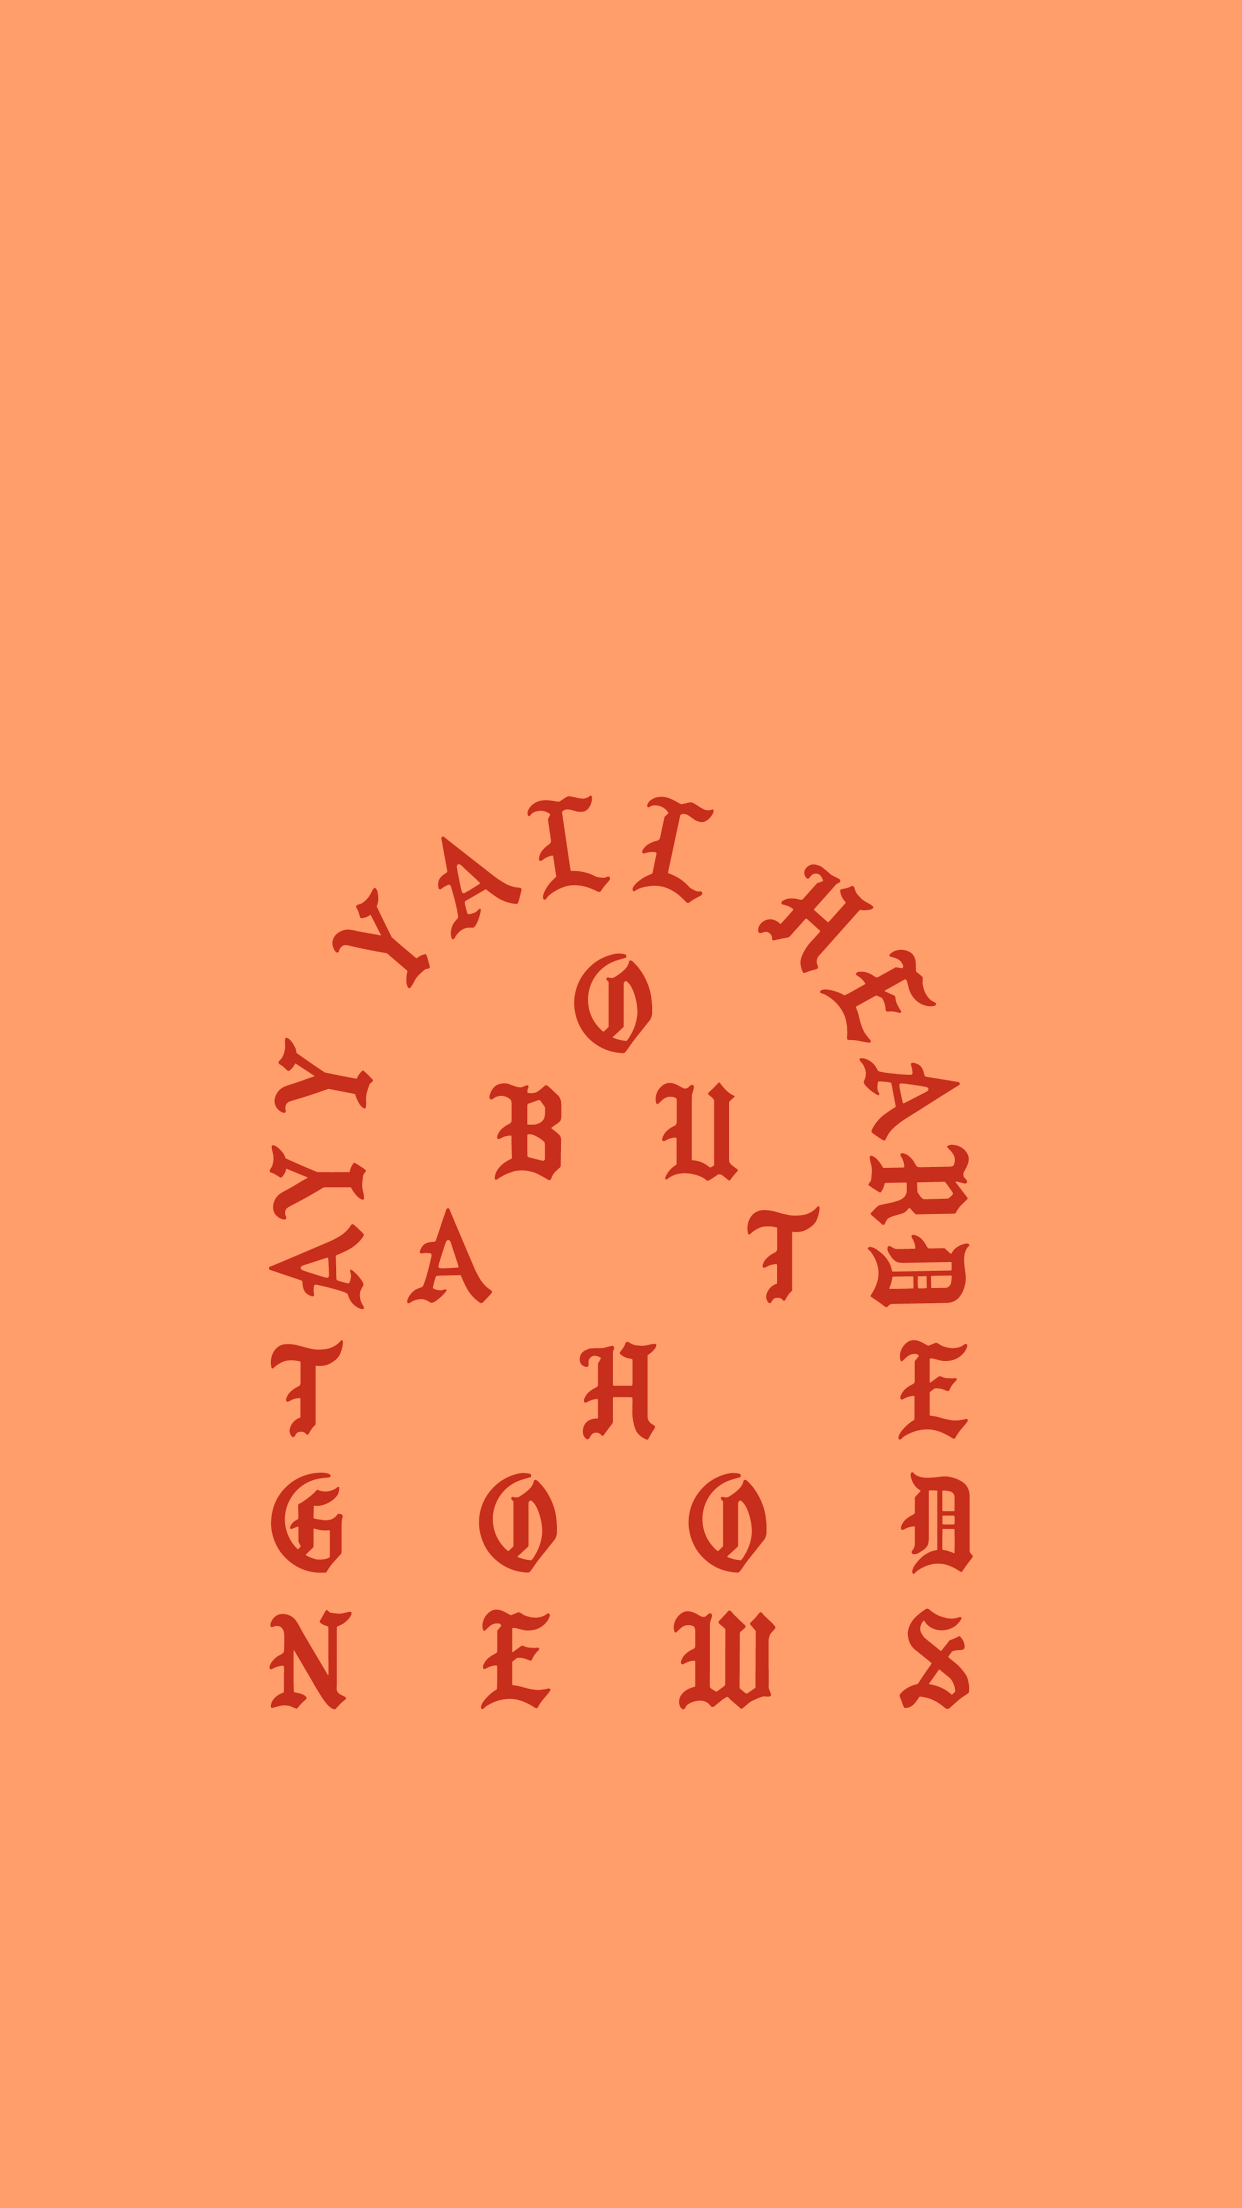 Kanye west iphone wallpaper tumblr - Iphone Wallpaper Kanye West Drake Definitions Sticker Menswear Sayings Colours Music